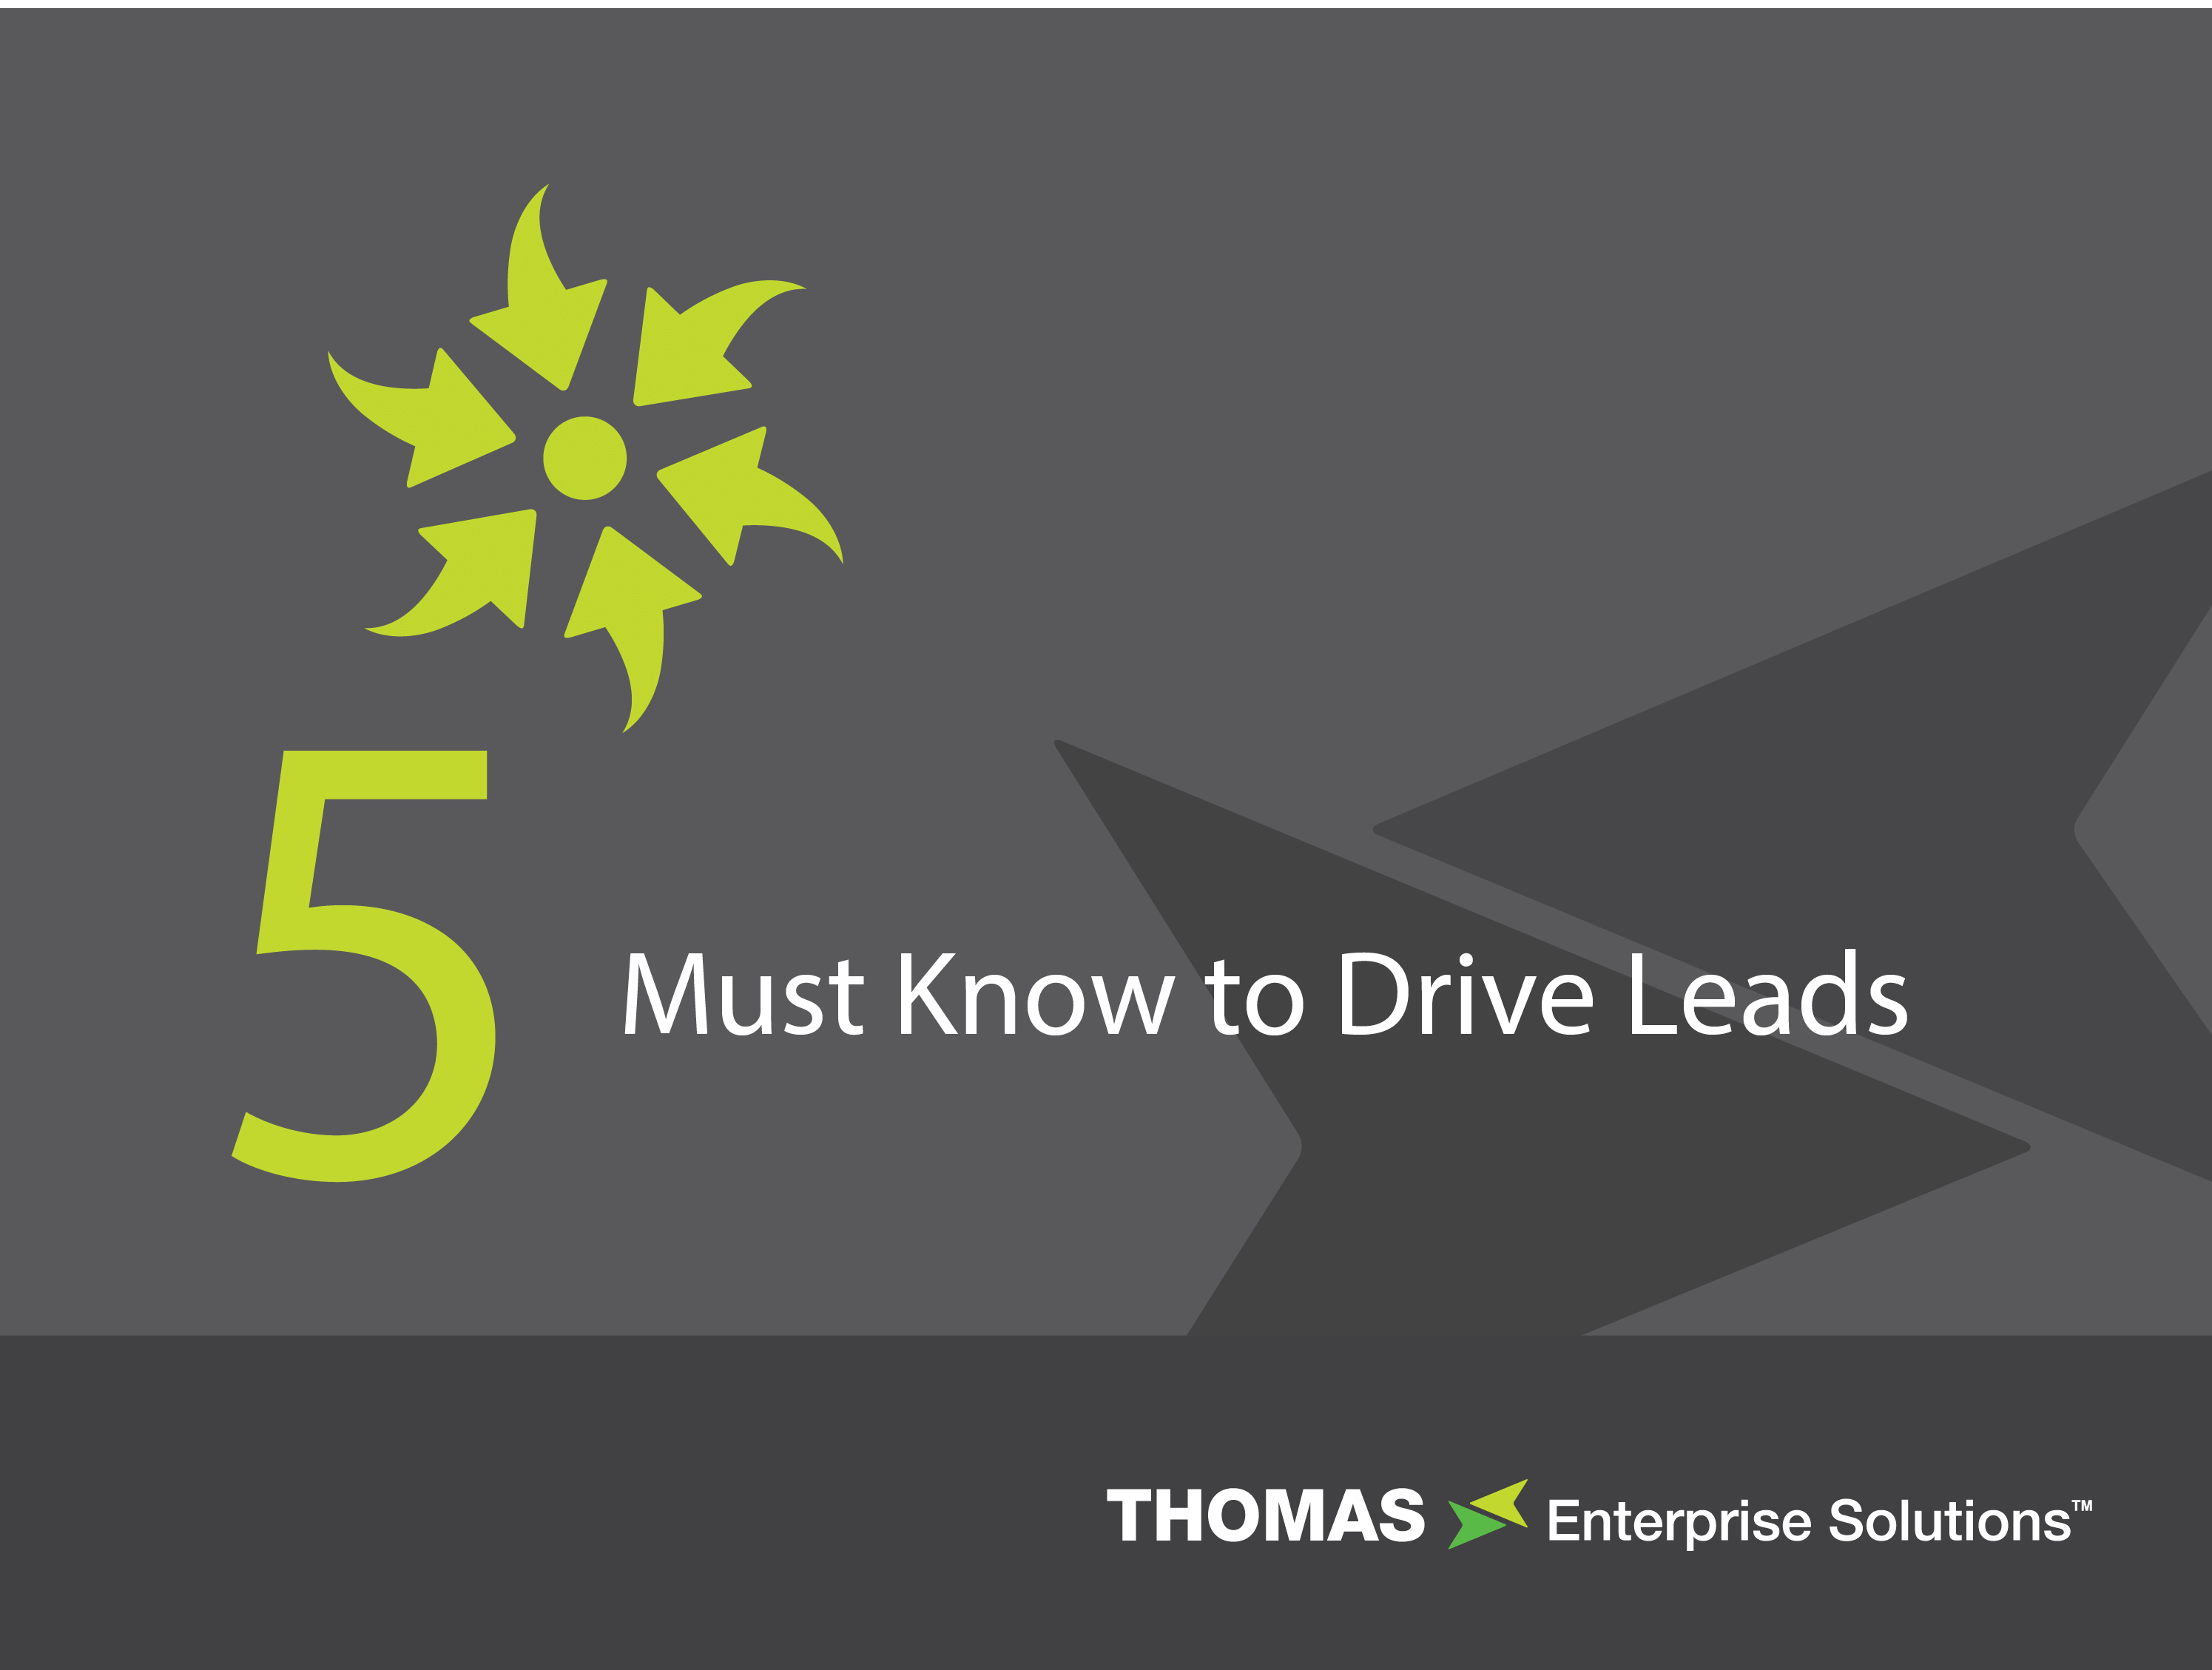 5_Things_to_Drive_Leads_Ebook.png